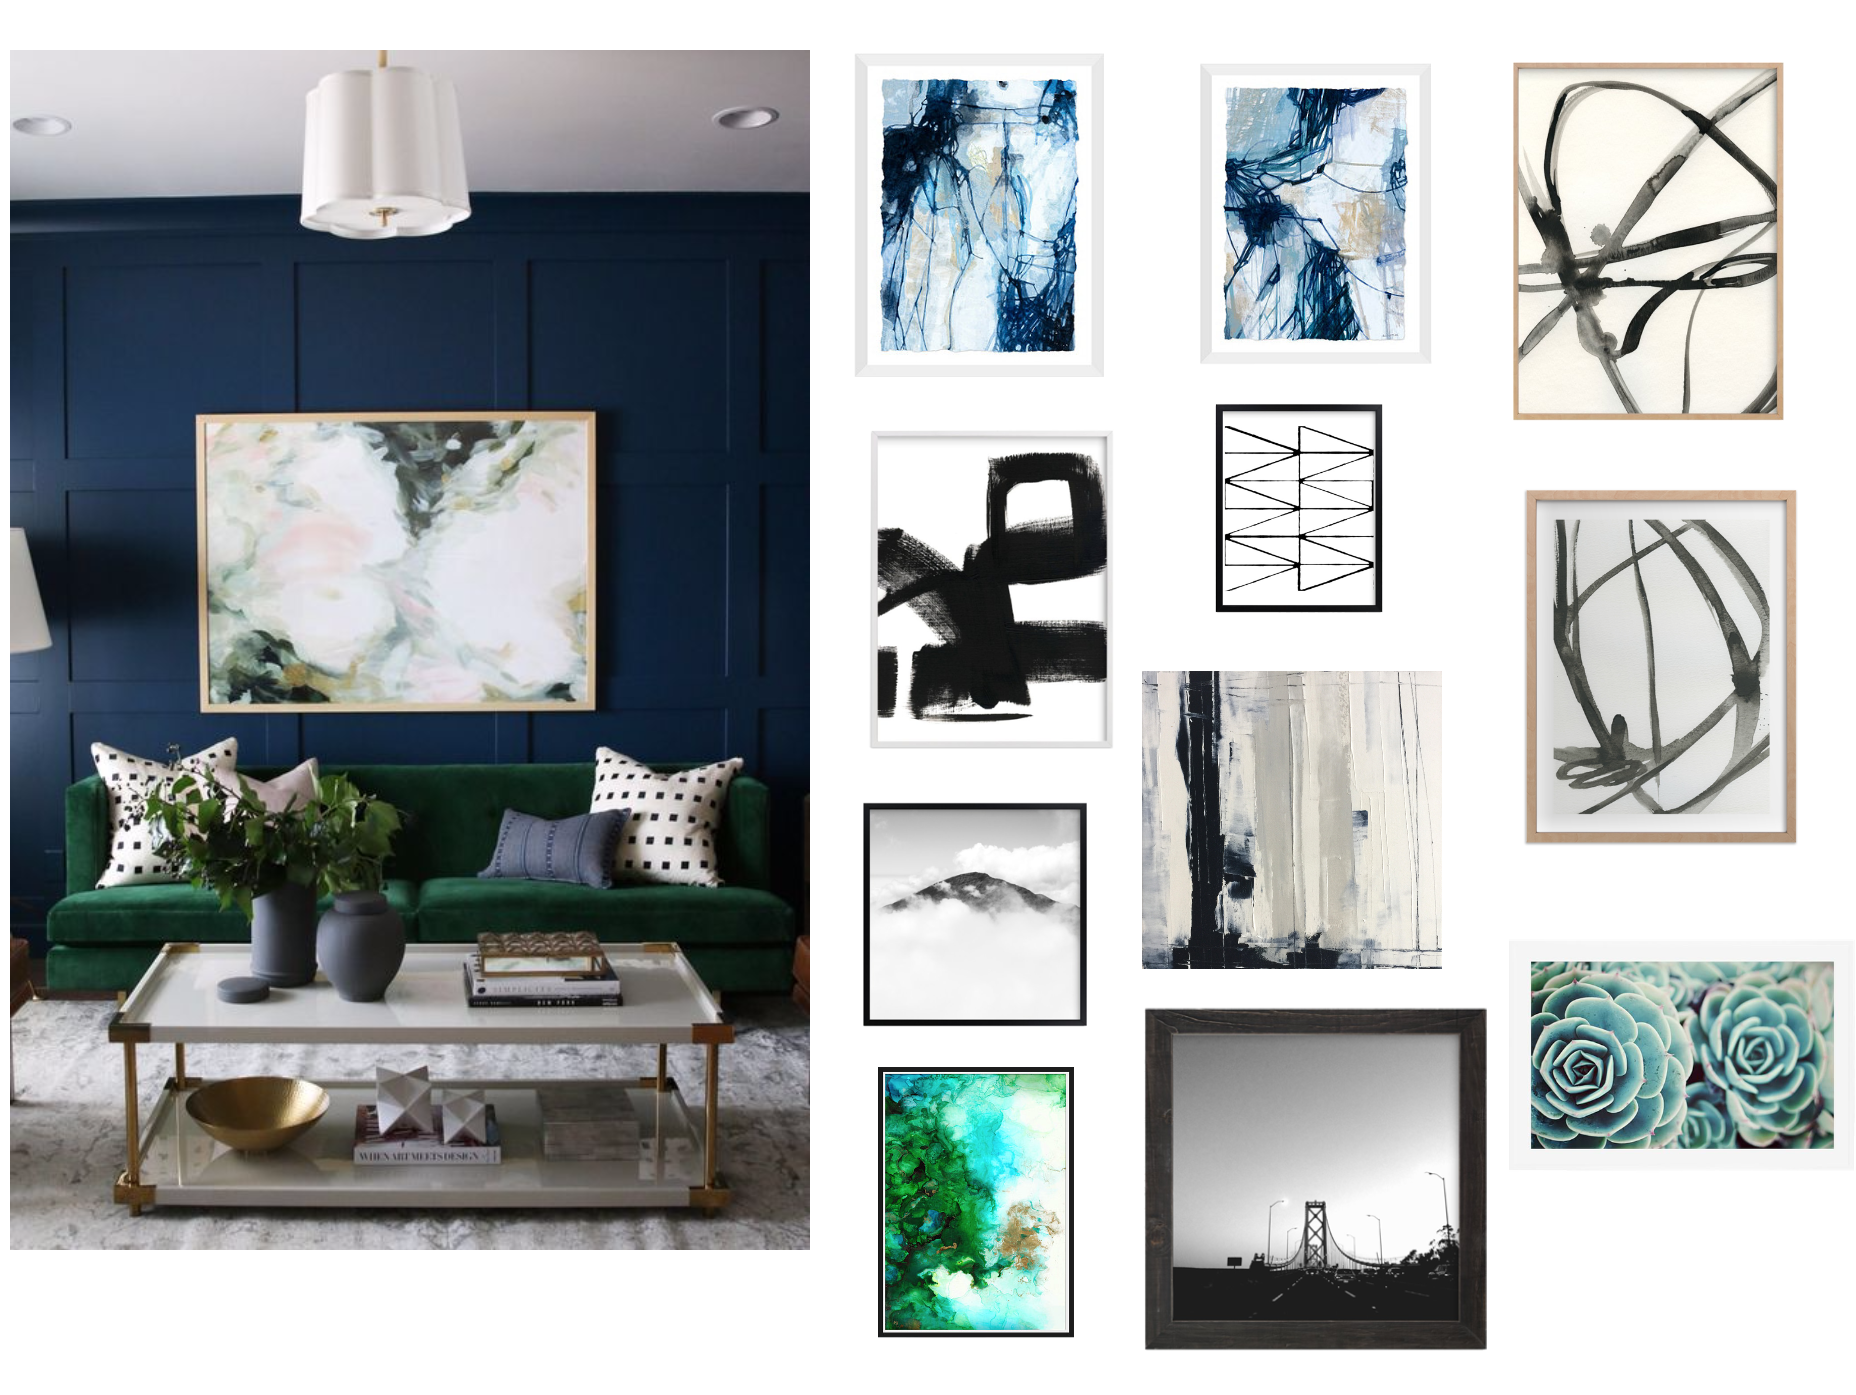 Online Interior Design Q A For Free About Finding The Perfect Piece Of Art For Any Room In Your